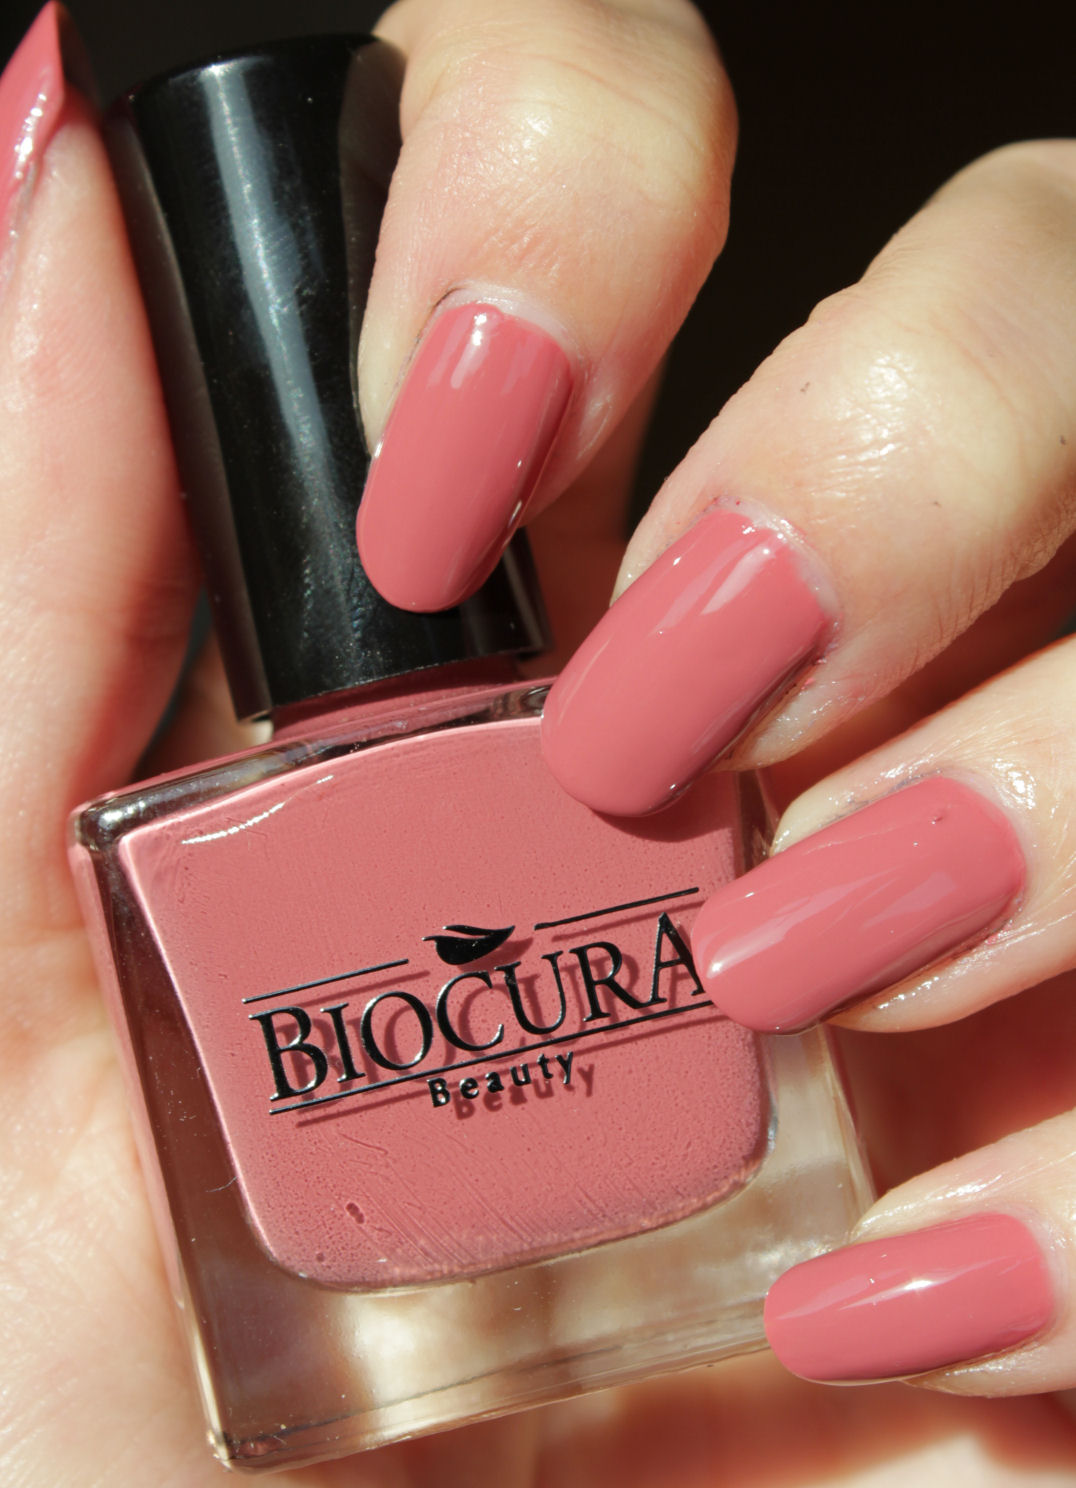 http://lacquediction.blogspot.de/2014/11/biocura-09-rose.html